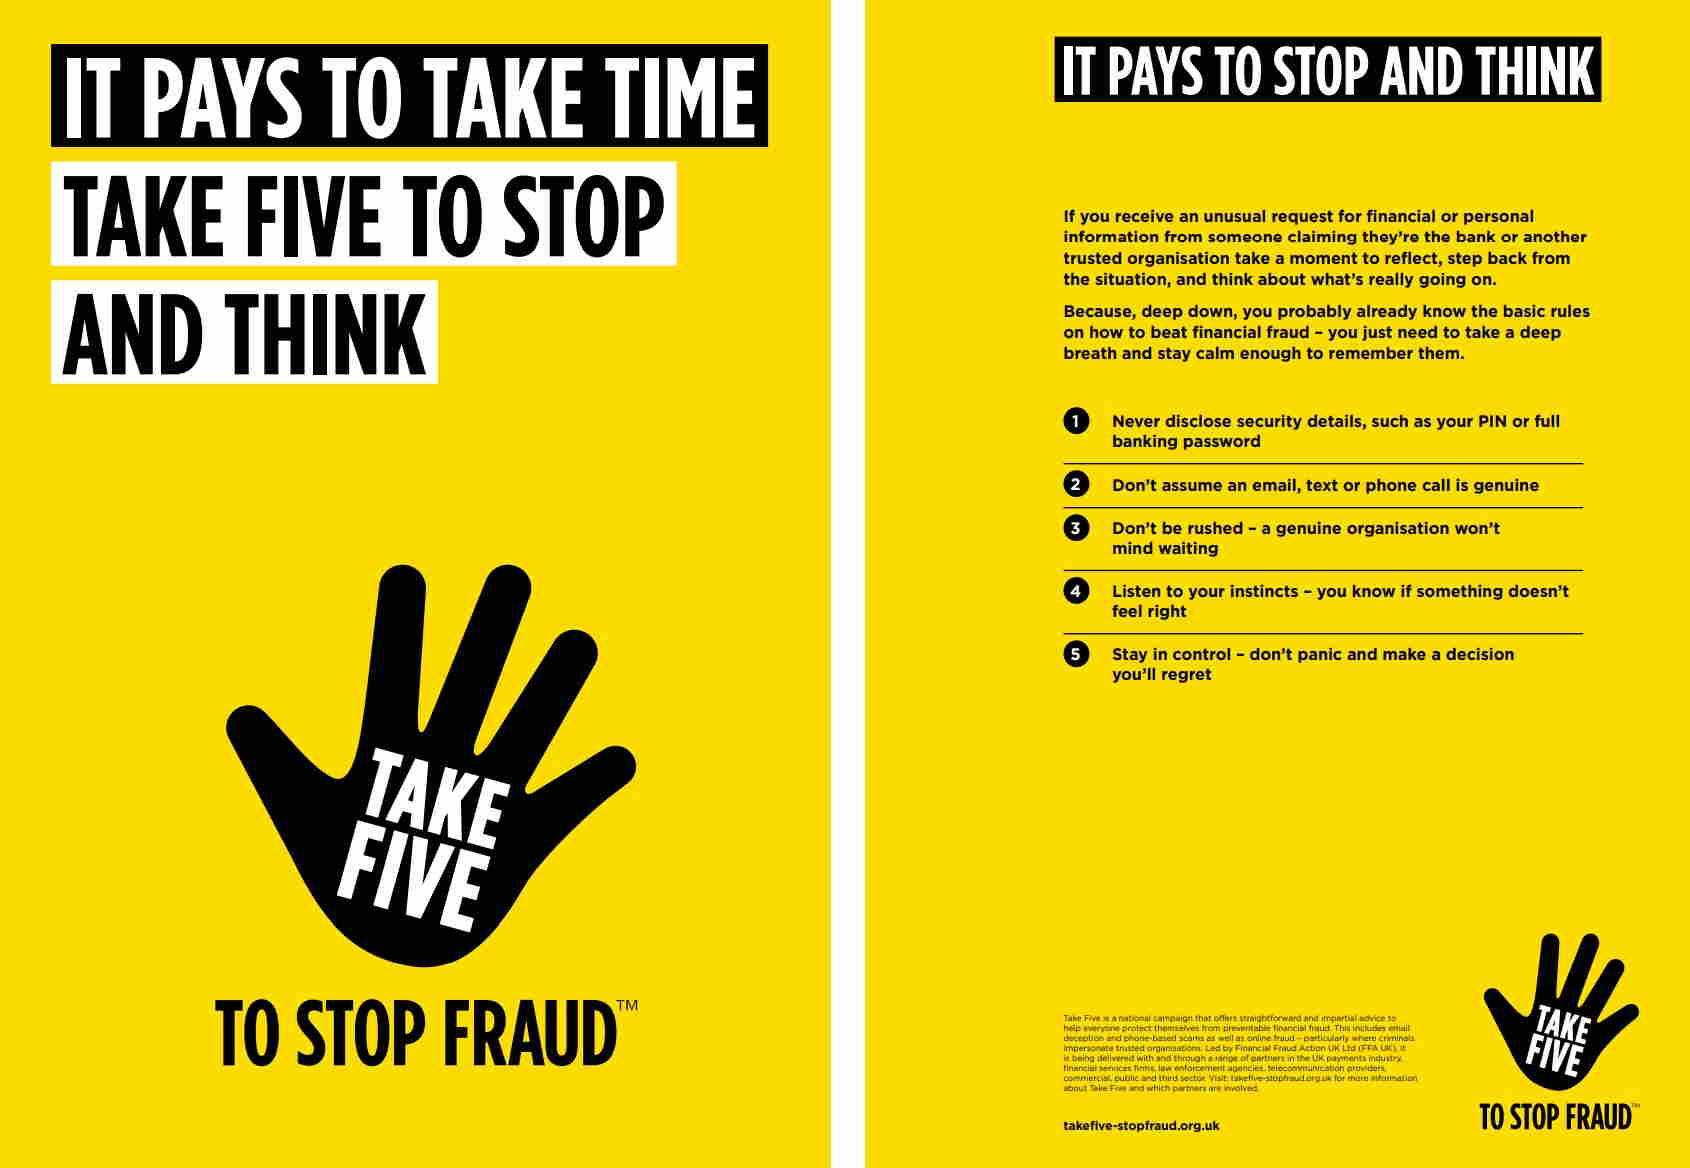 """Take Five leaflet. Message says: """"It pays to stop and think.  If you receive an unusual request for financial or personal information from someone claiming they're from the bank or another trusted organisation take a moment to reflect, step back from the situation, and think about what's really going on. Basic rules on how to beat financial fraud: 1. Never disclose security details, such as your PIN or full banking password 2. Don't assume an email, text or phone call is genuine 3. Don't be rushed - a genuine organisation won't mind waiting 4. Listen to your instincts - you know if something doesn't feel right 5. Stay in control - don't panic and make a decision you'll regret"""""""